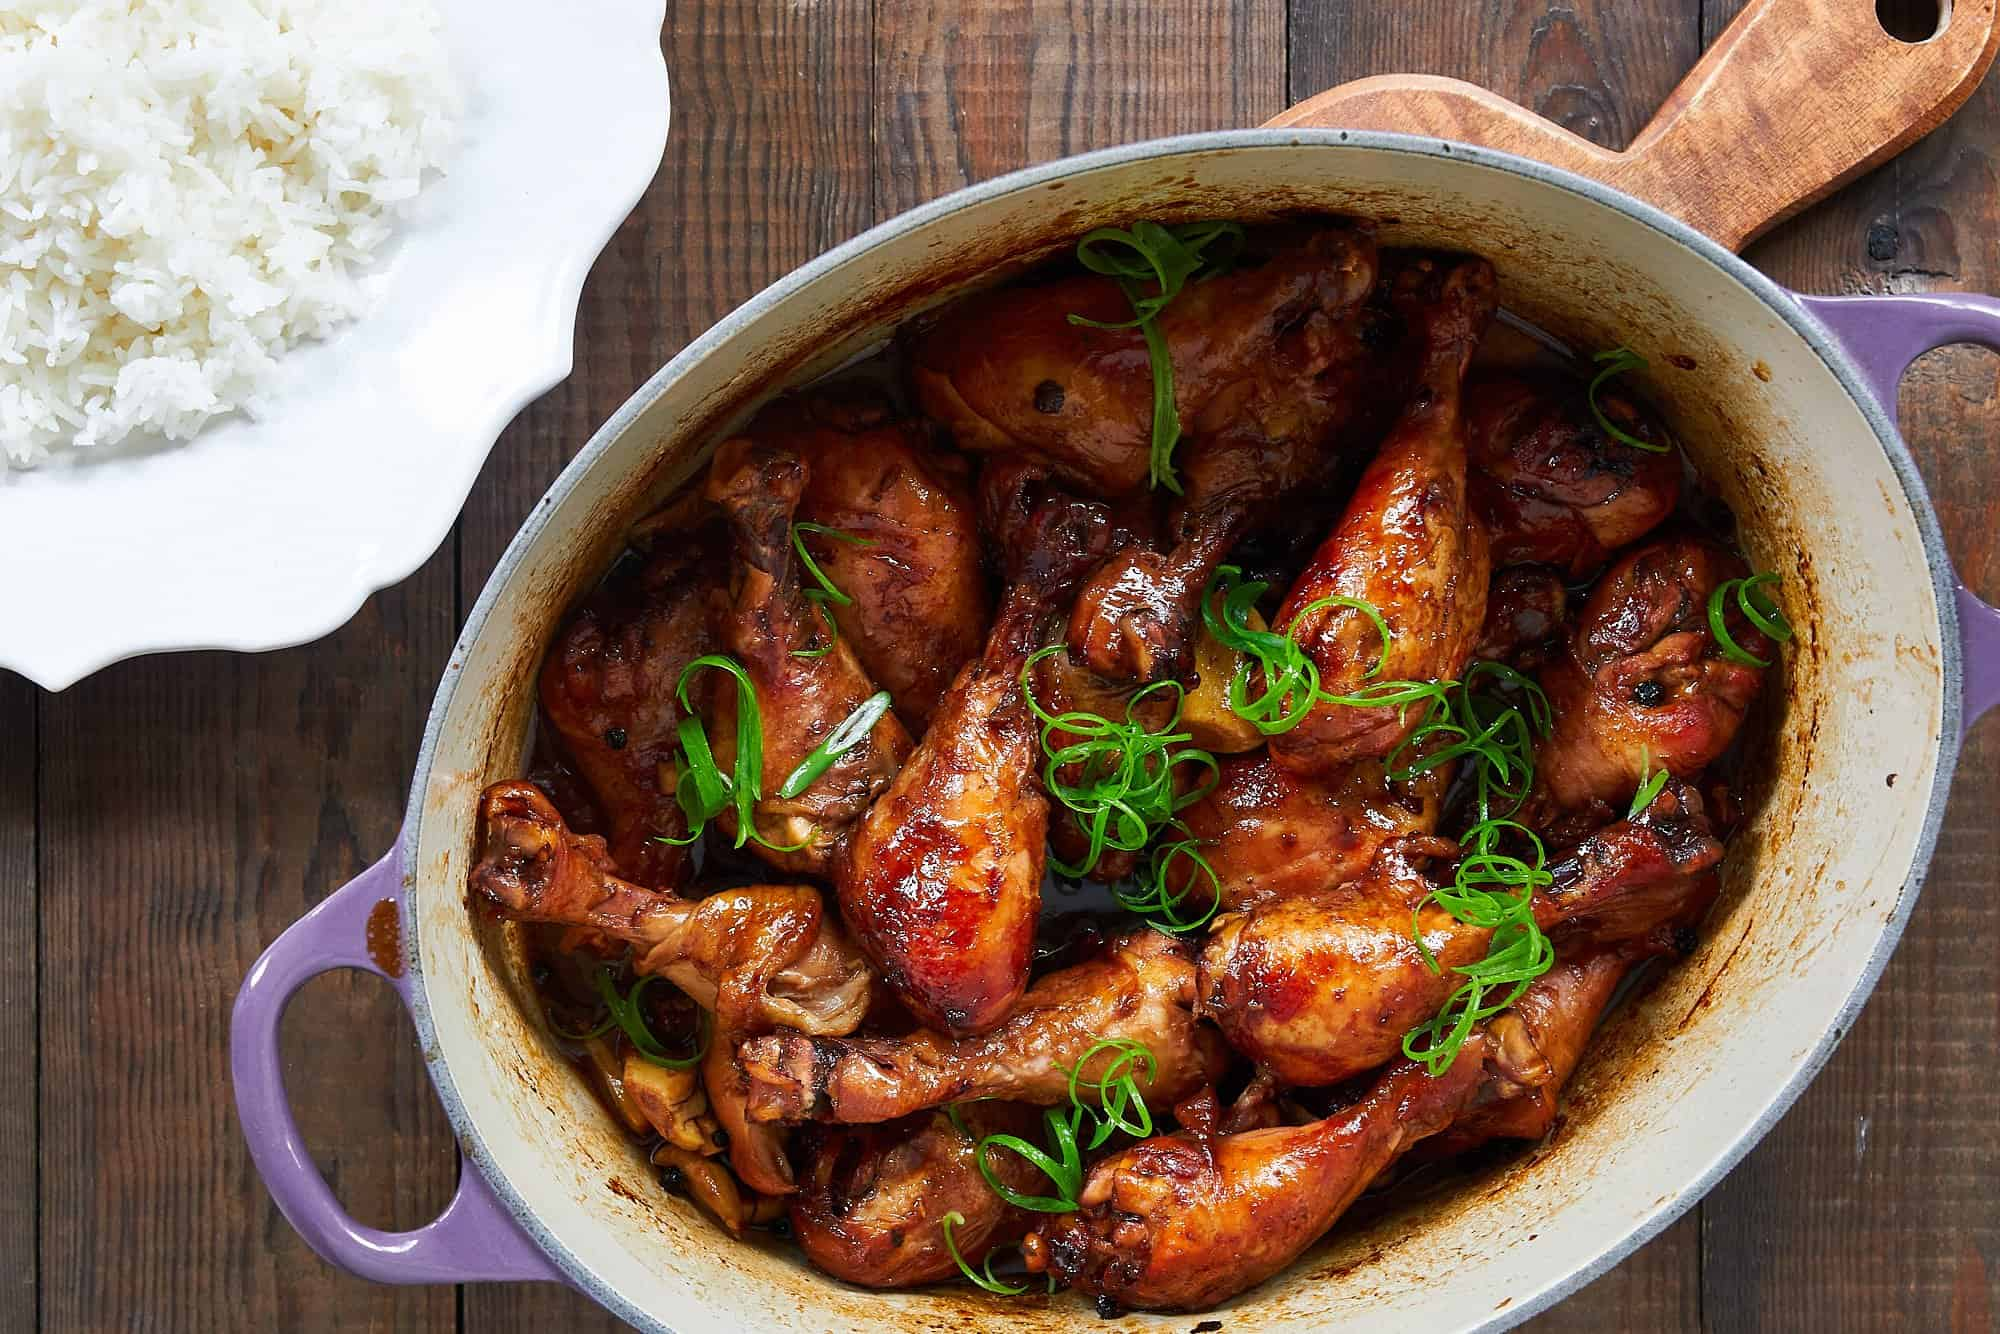 This chicken adobo is fall-off-the-bone tender with a rich, tangy and savory sauce.